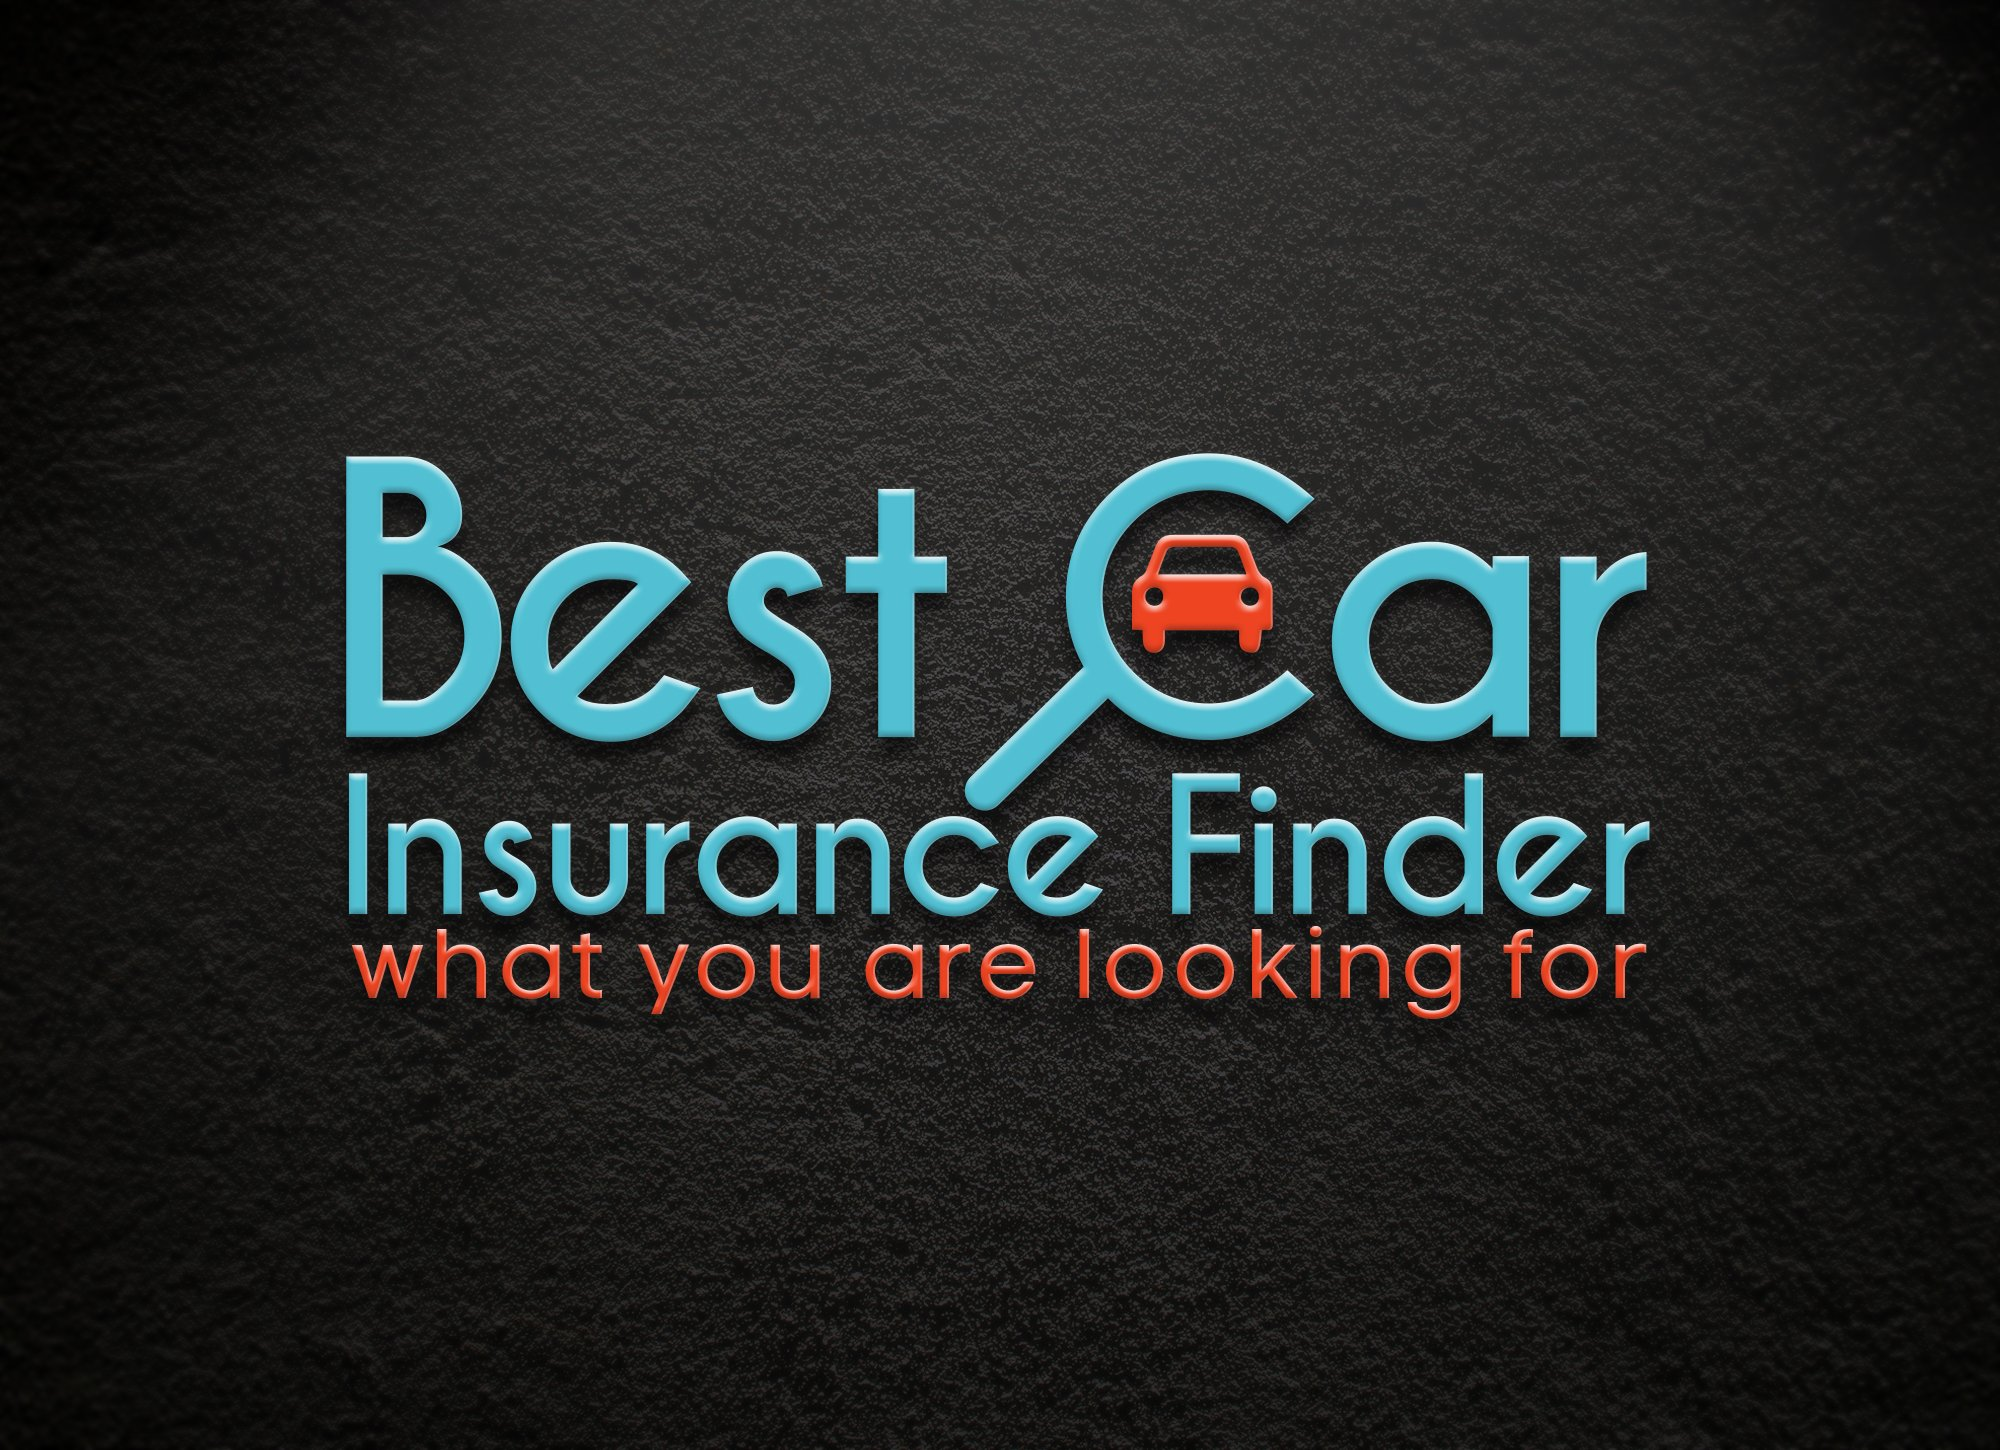 Advantage Car And Credit >> Best Car Insurance Finder - Free Auto Quotes, Compare & Save!